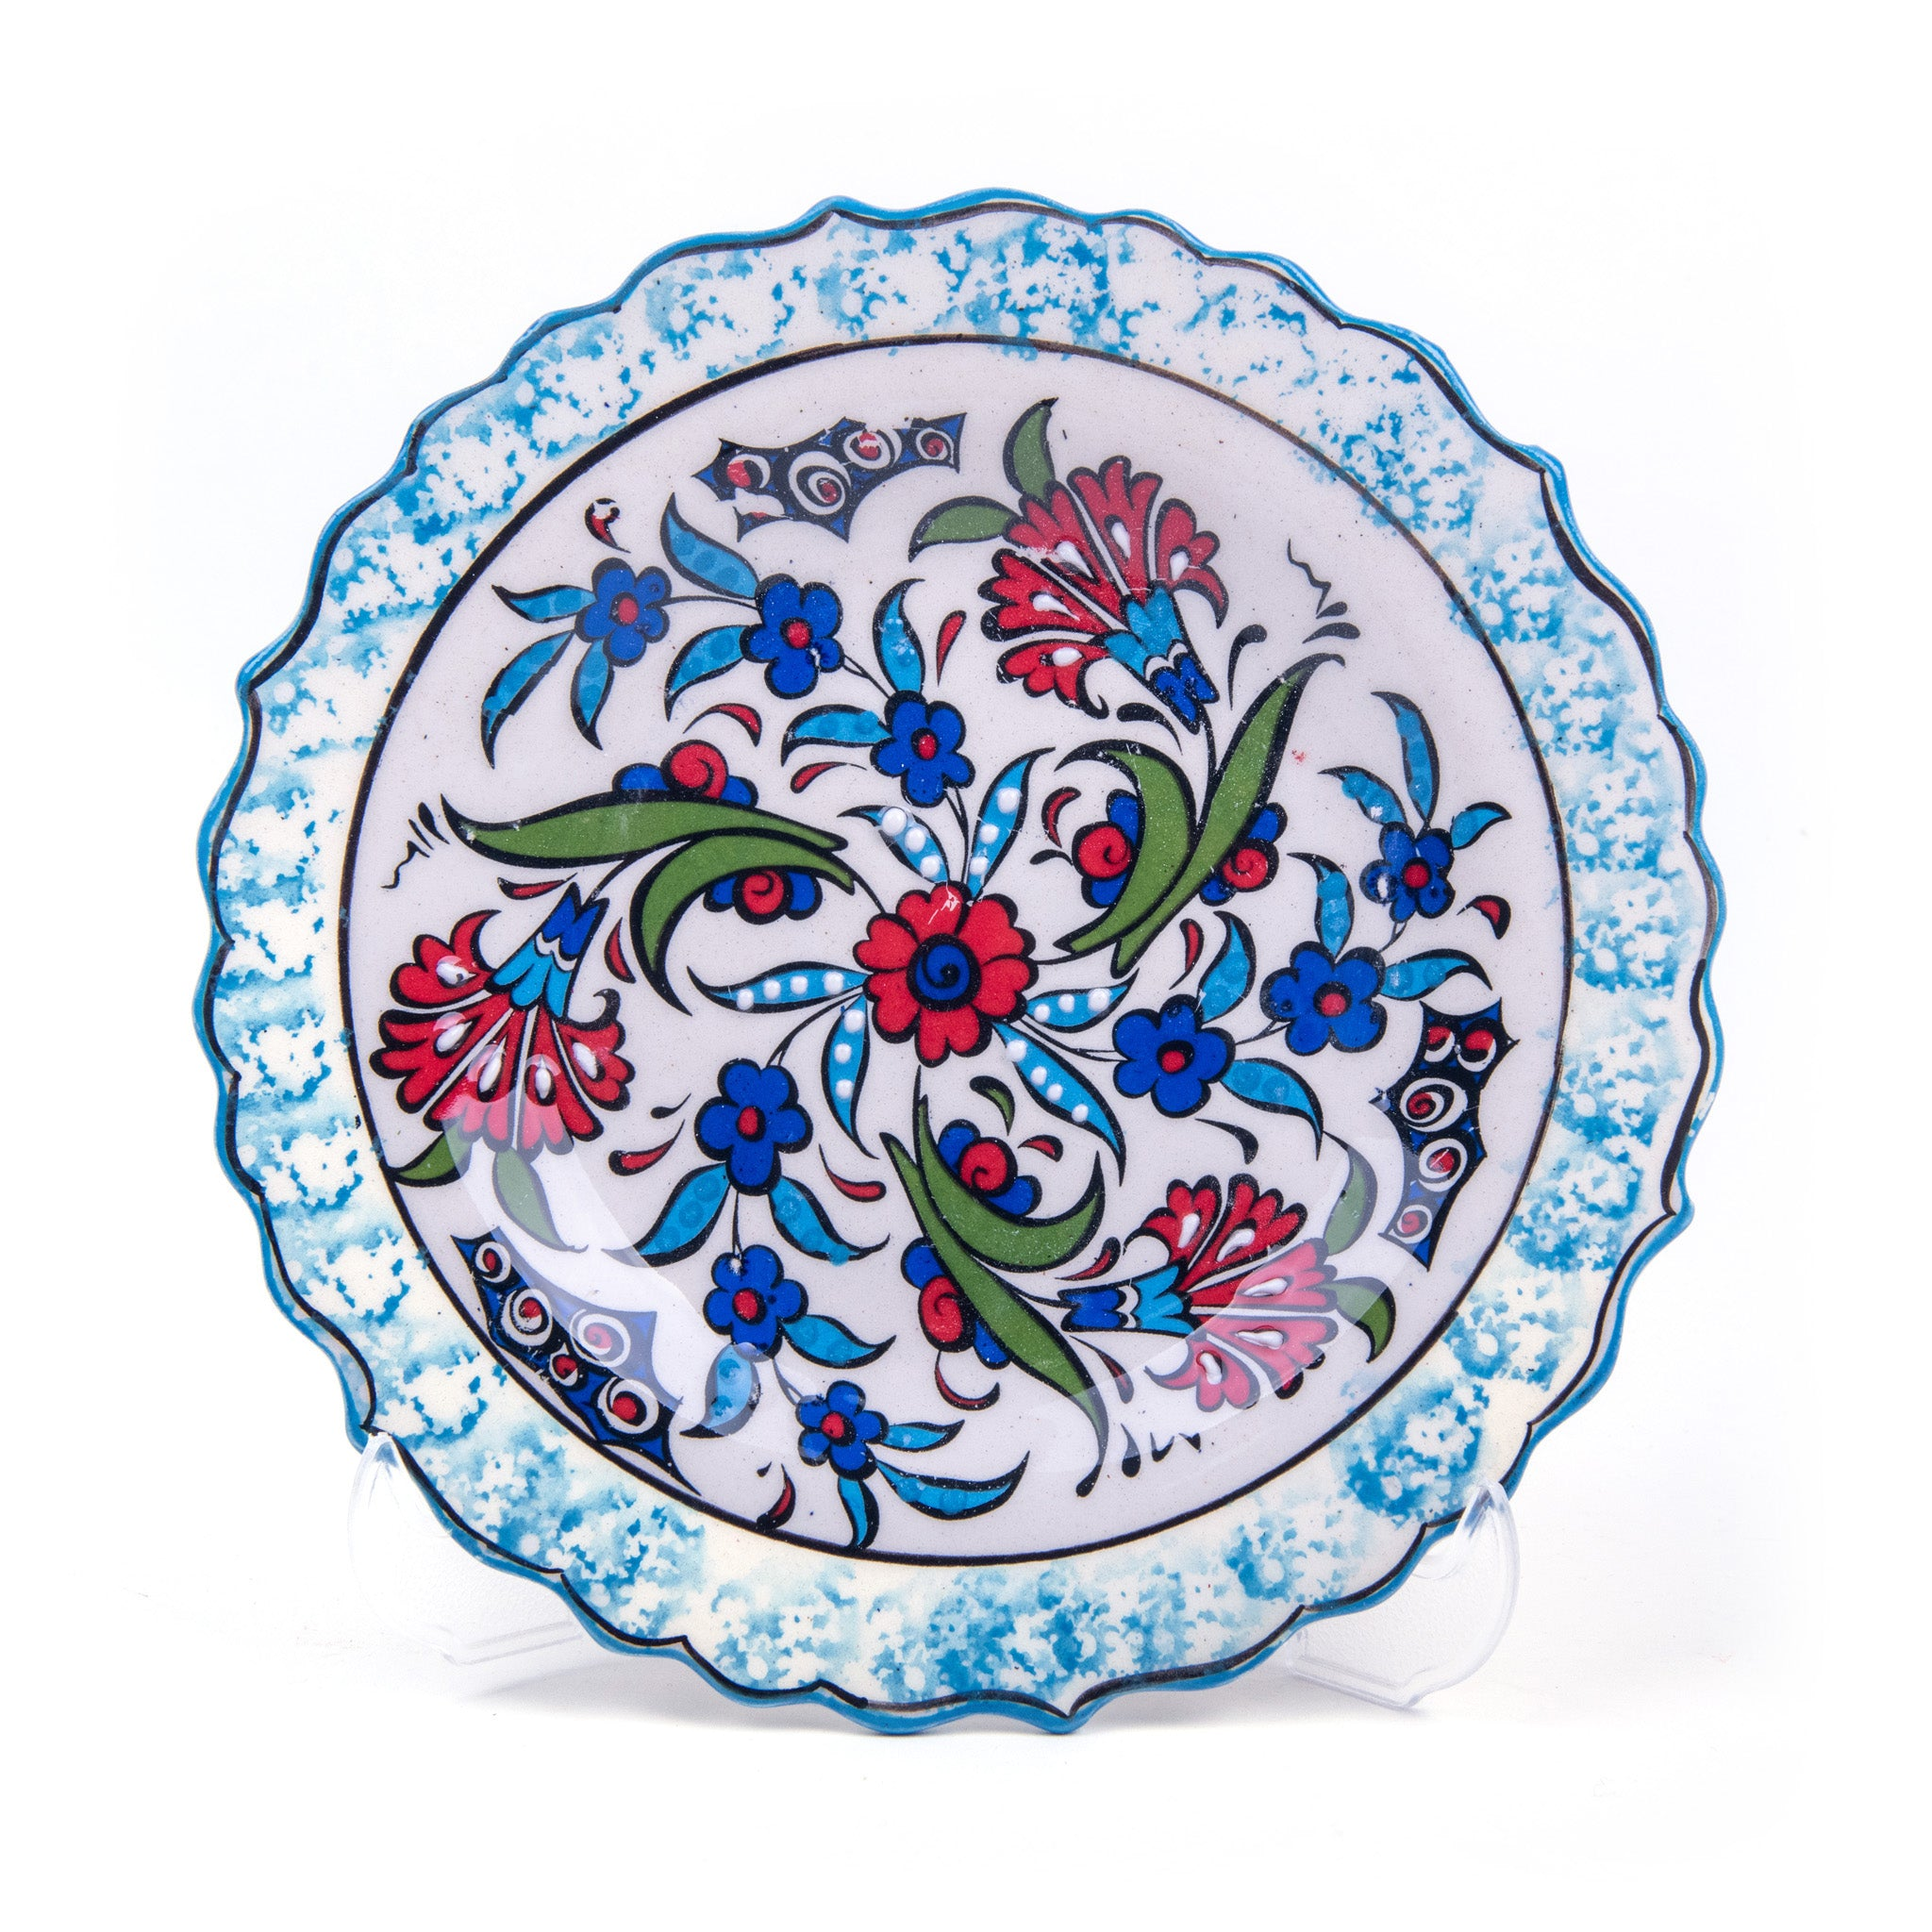 "Turkish Ceramic Iznik Design Handmade Round Plate - 18 cm (7.2"")"